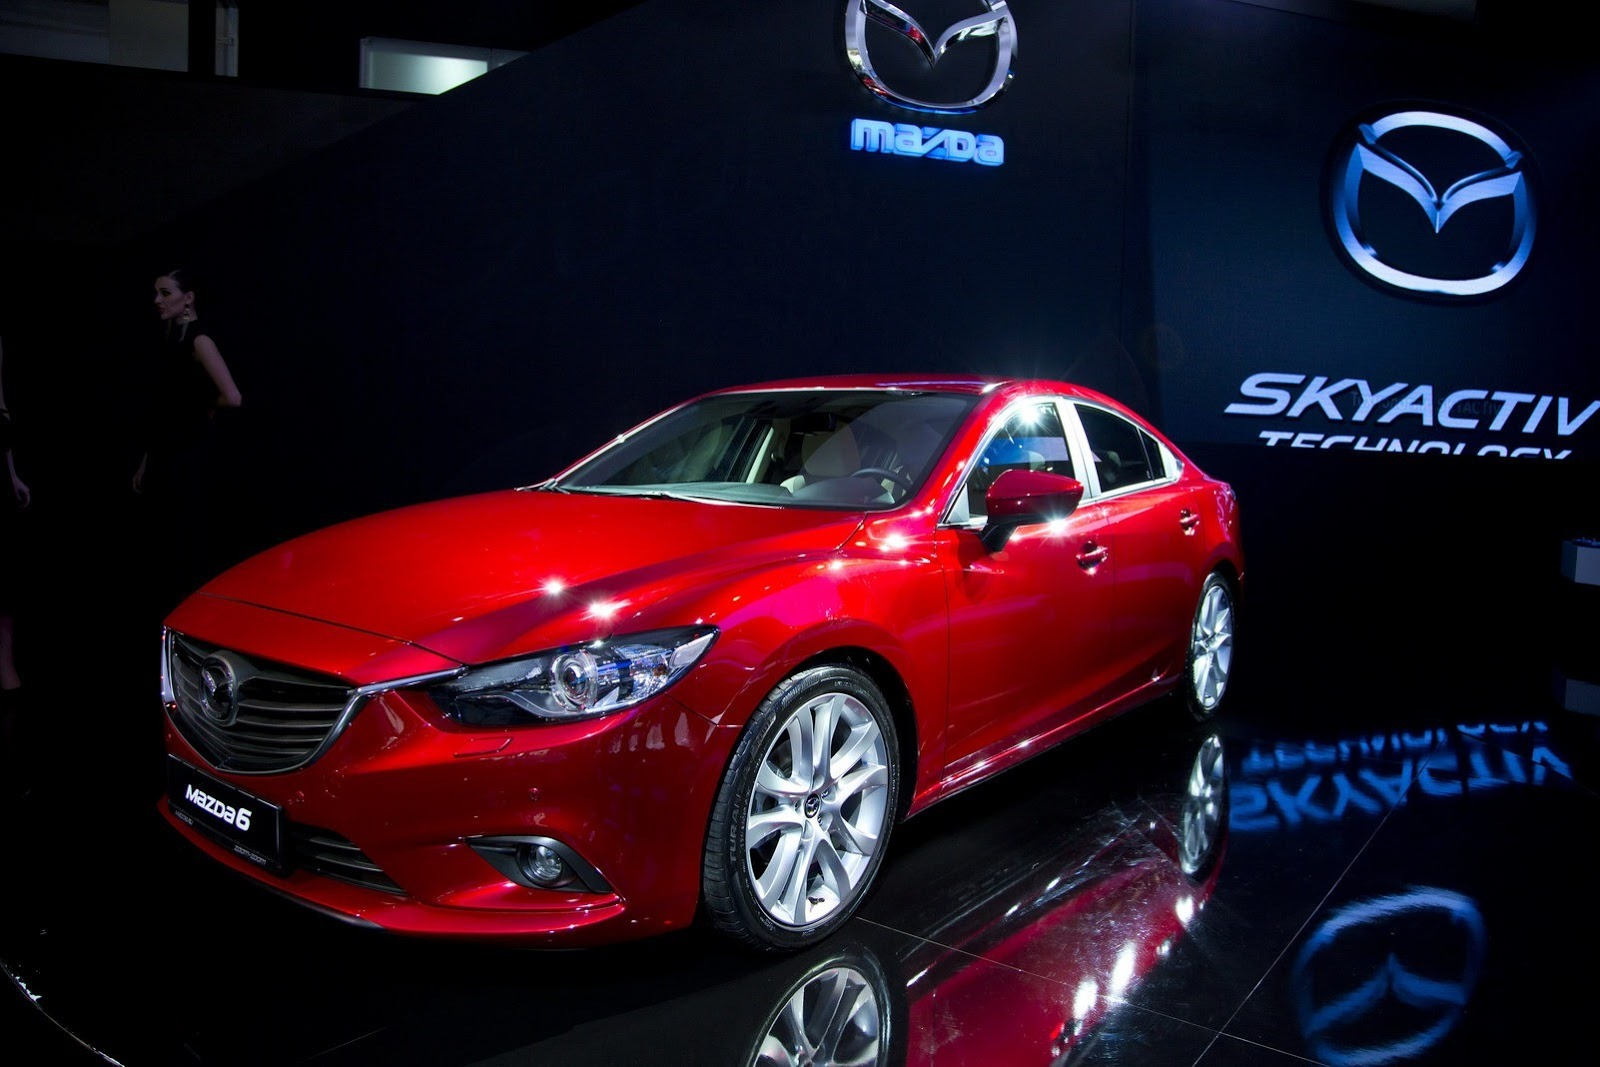 2014 Mazda 6 Coupe - Viewing Gallery